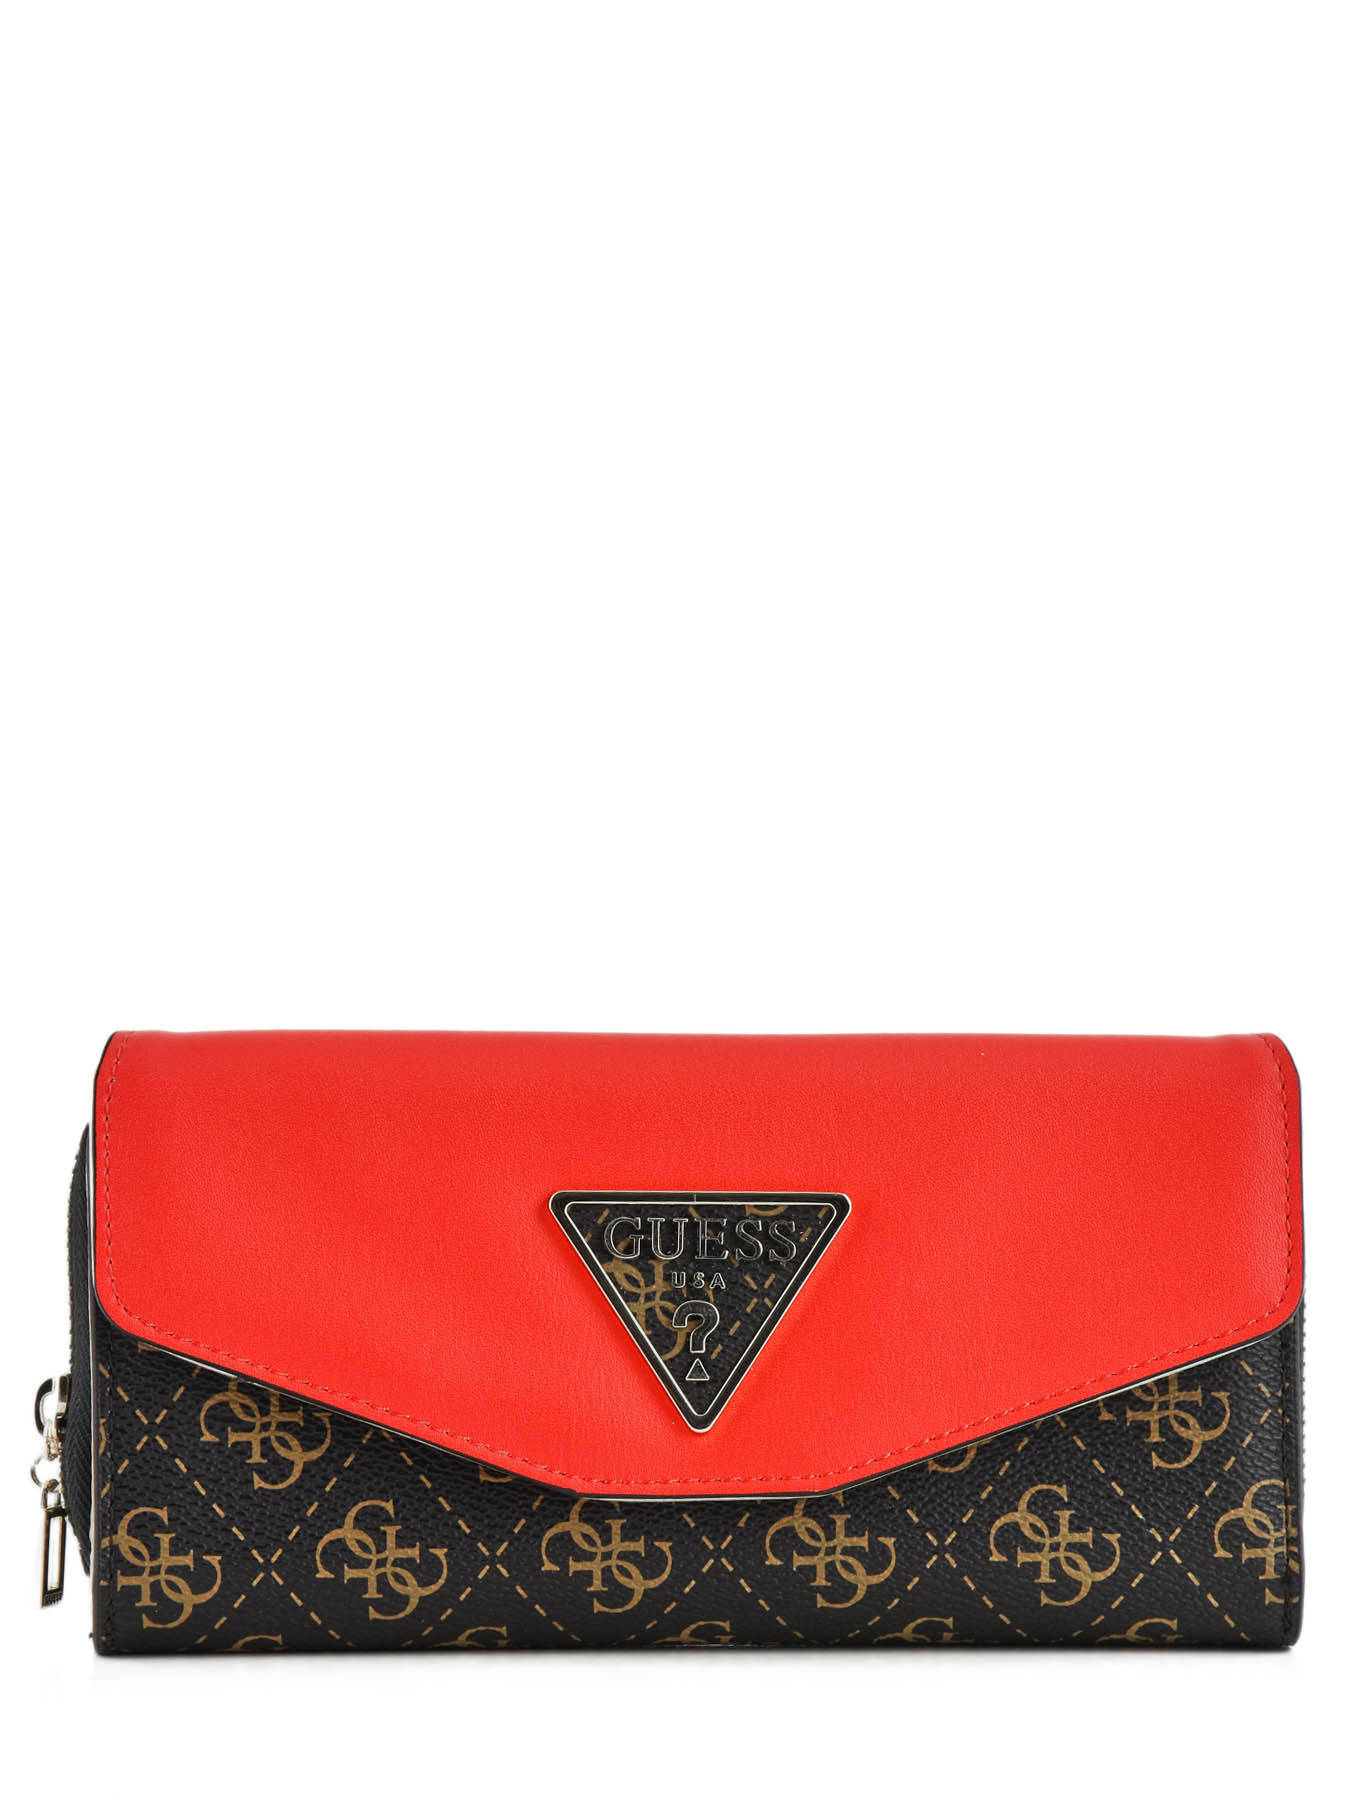 Portefeuille Guess Maddy Swsg7291620 Sur Edisacbe